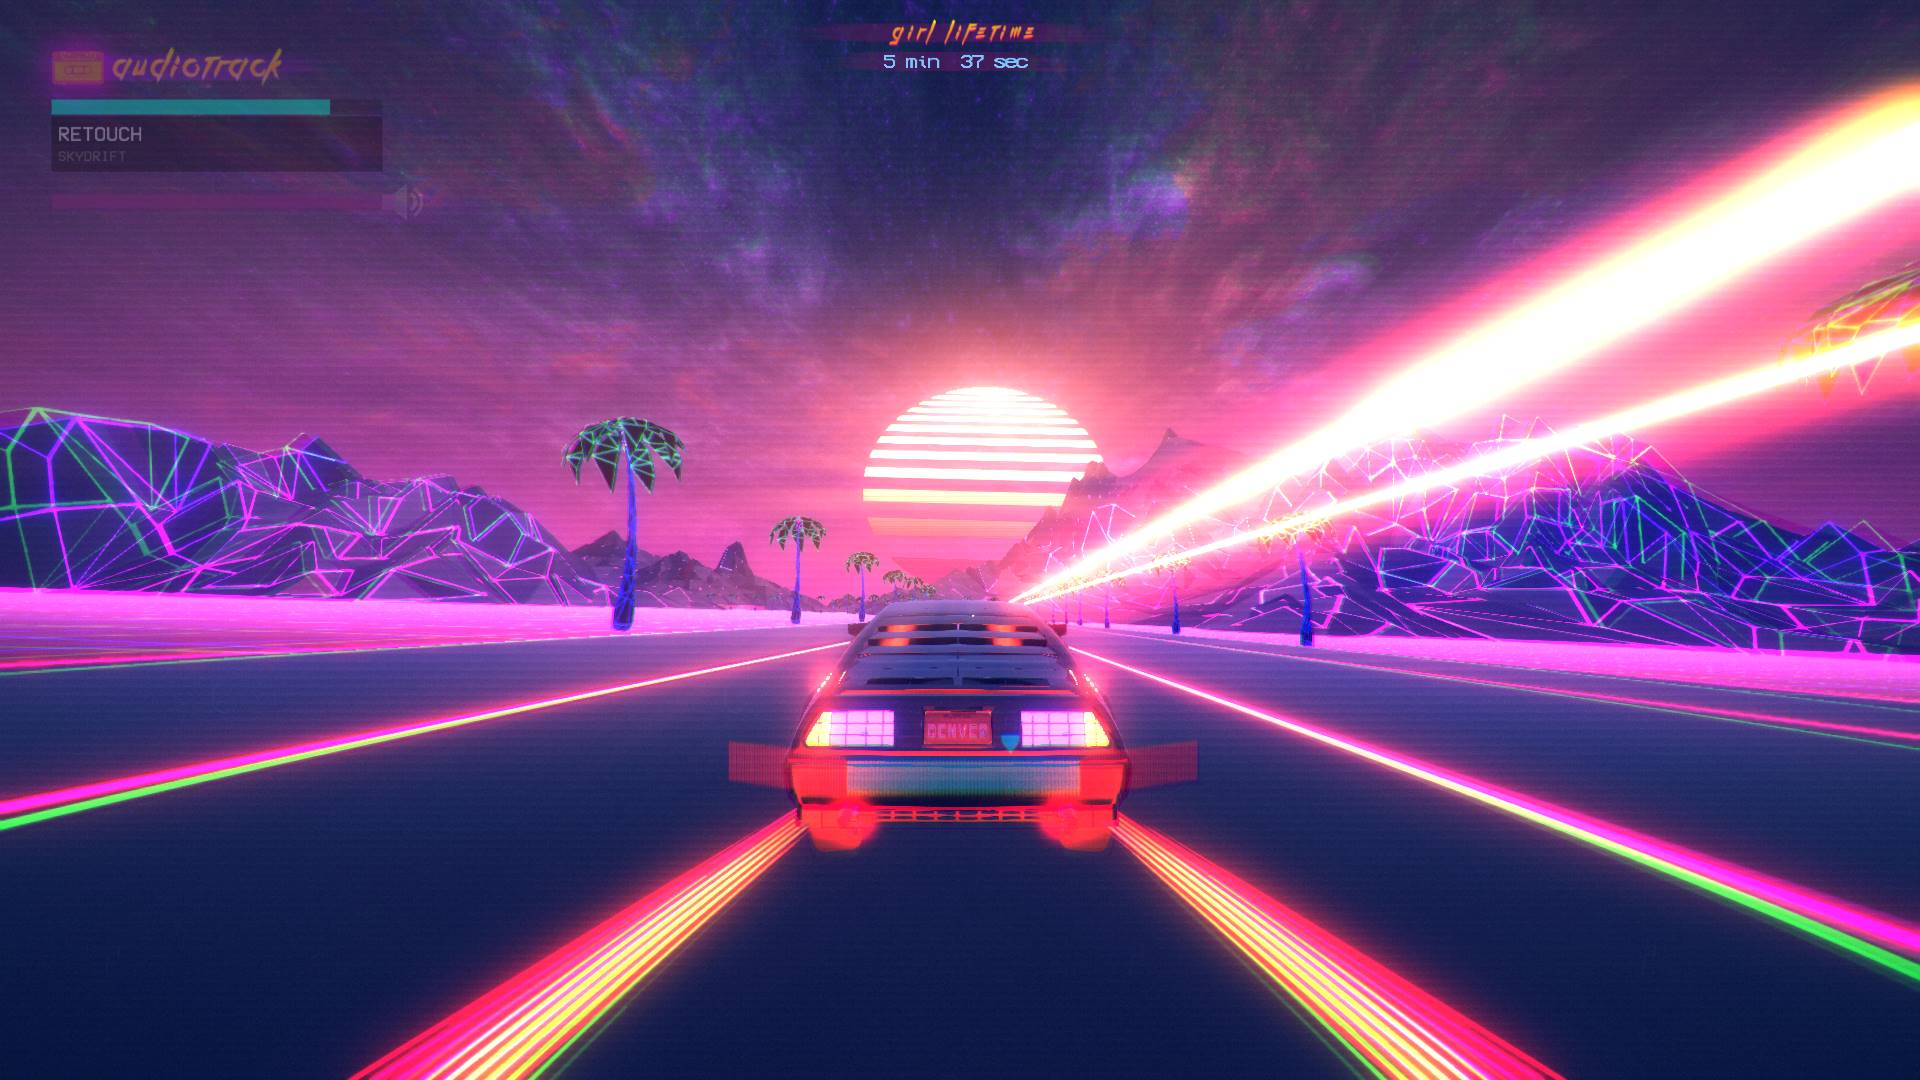 1920 Car Synthwave Wallpaper Download Outdrive Full Pc Game